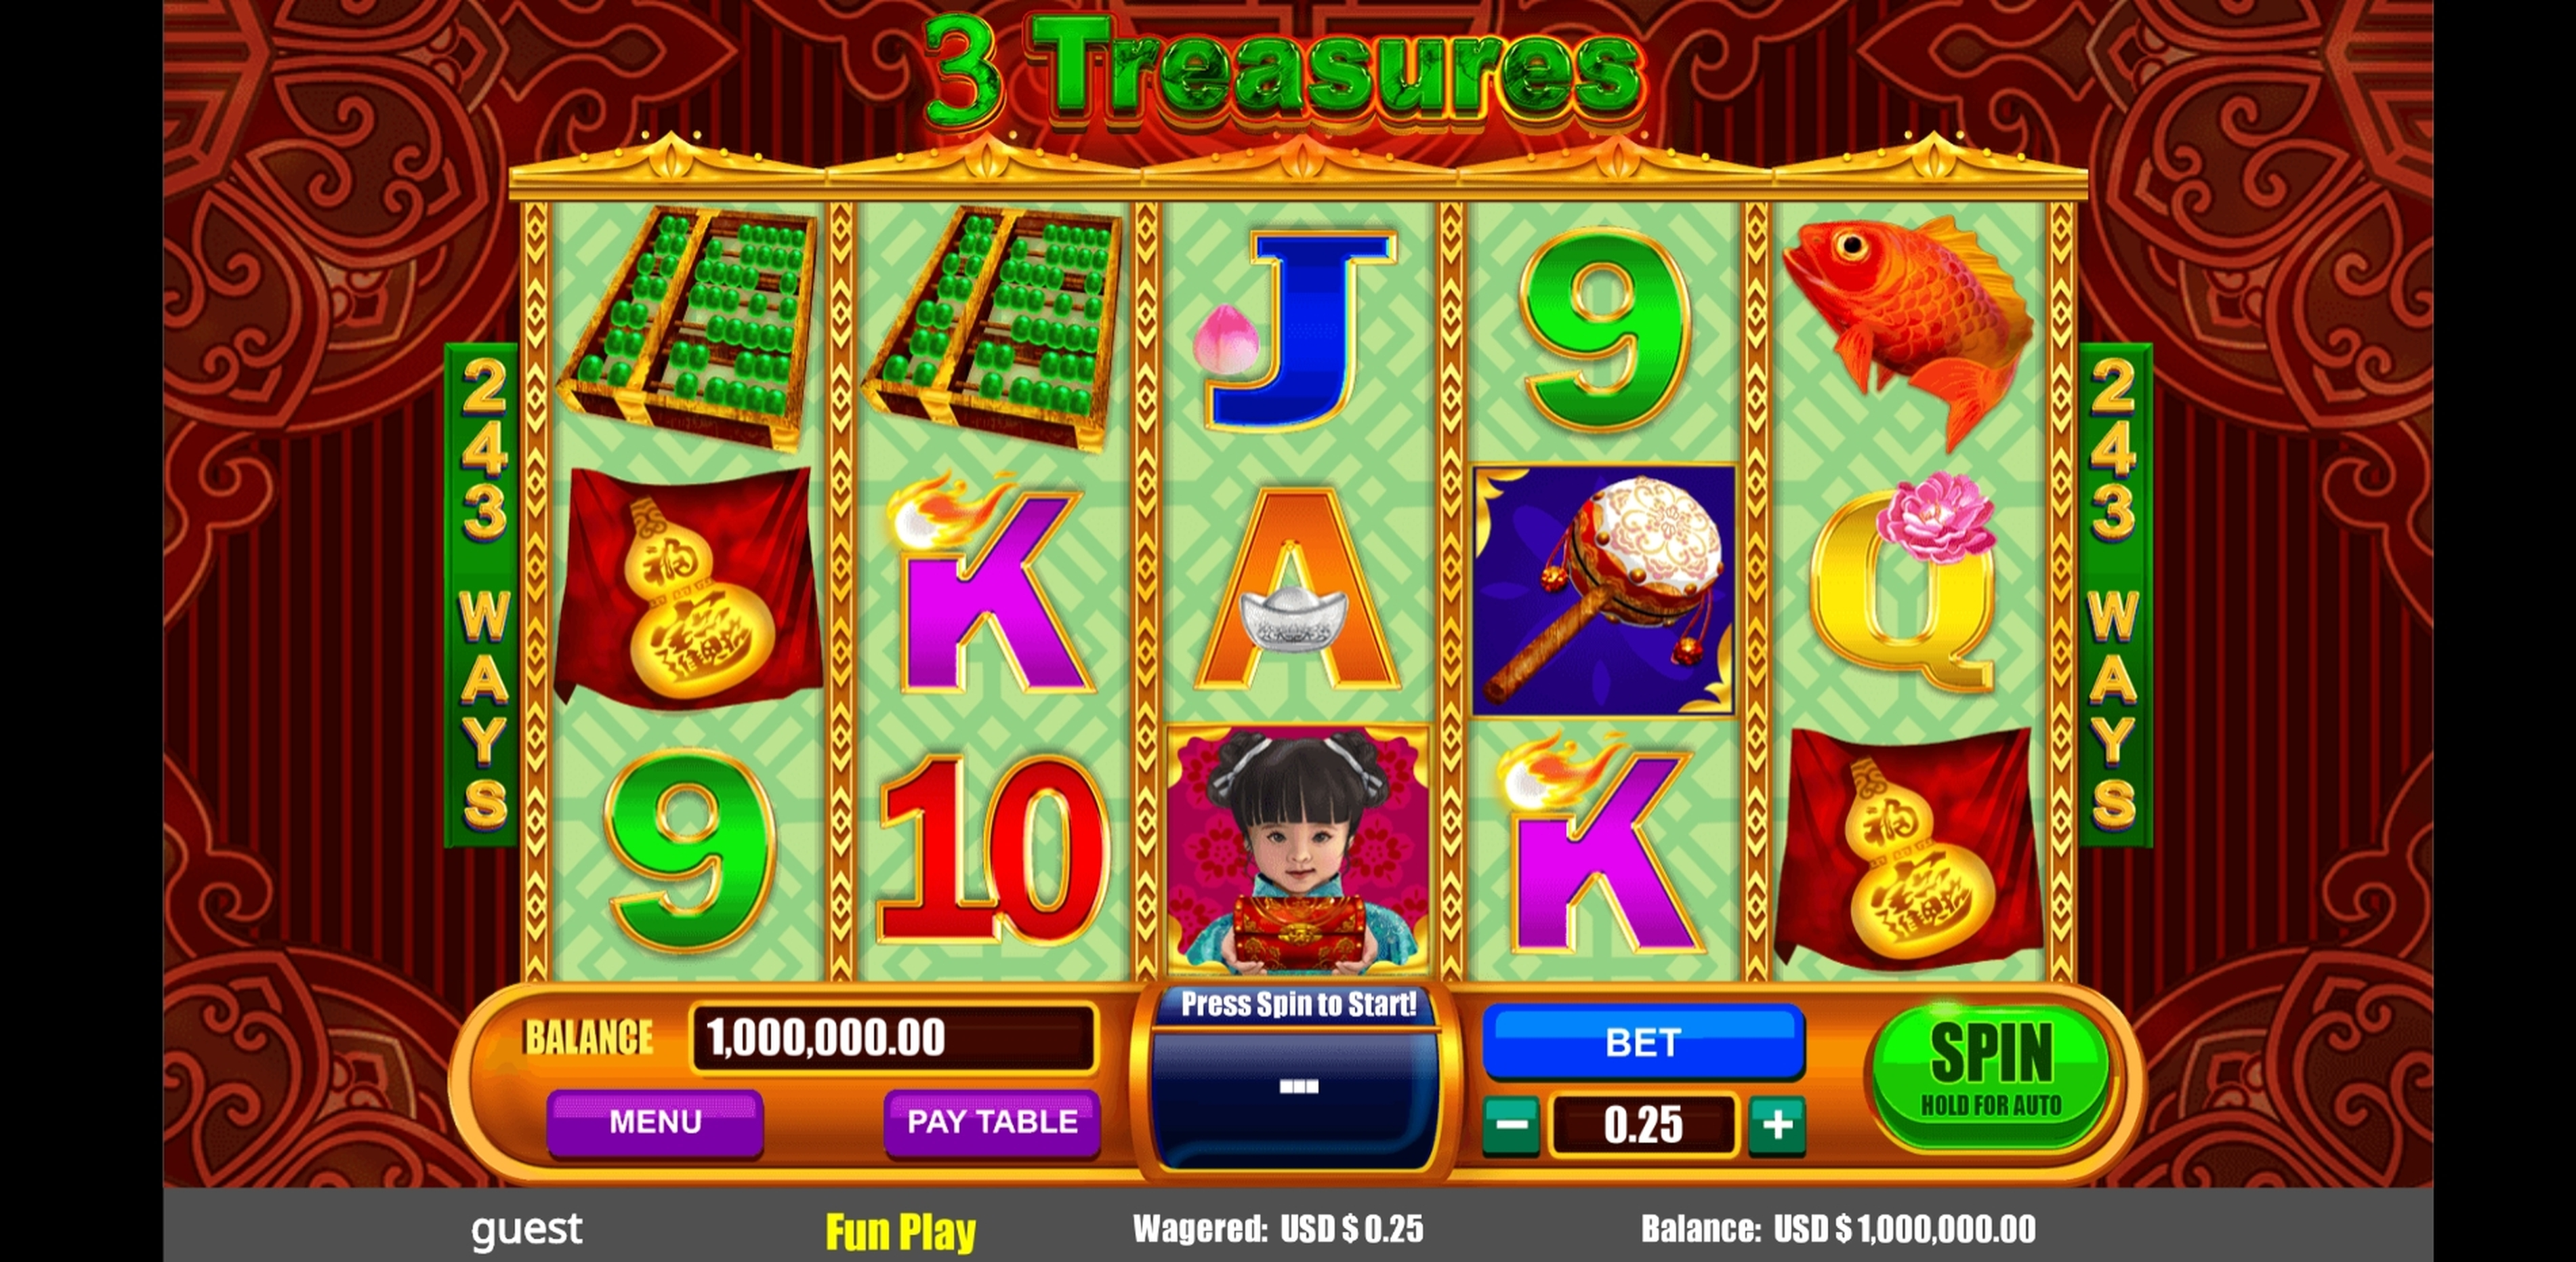 Reels in 3 Treasures Slot Game by August Gaming